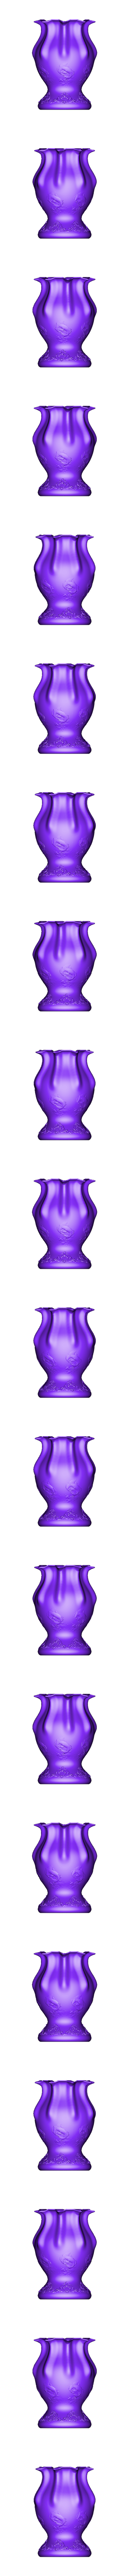 Vase 2.OBJ Download OBJ file Vase model 2 • 3D printing model, tex123